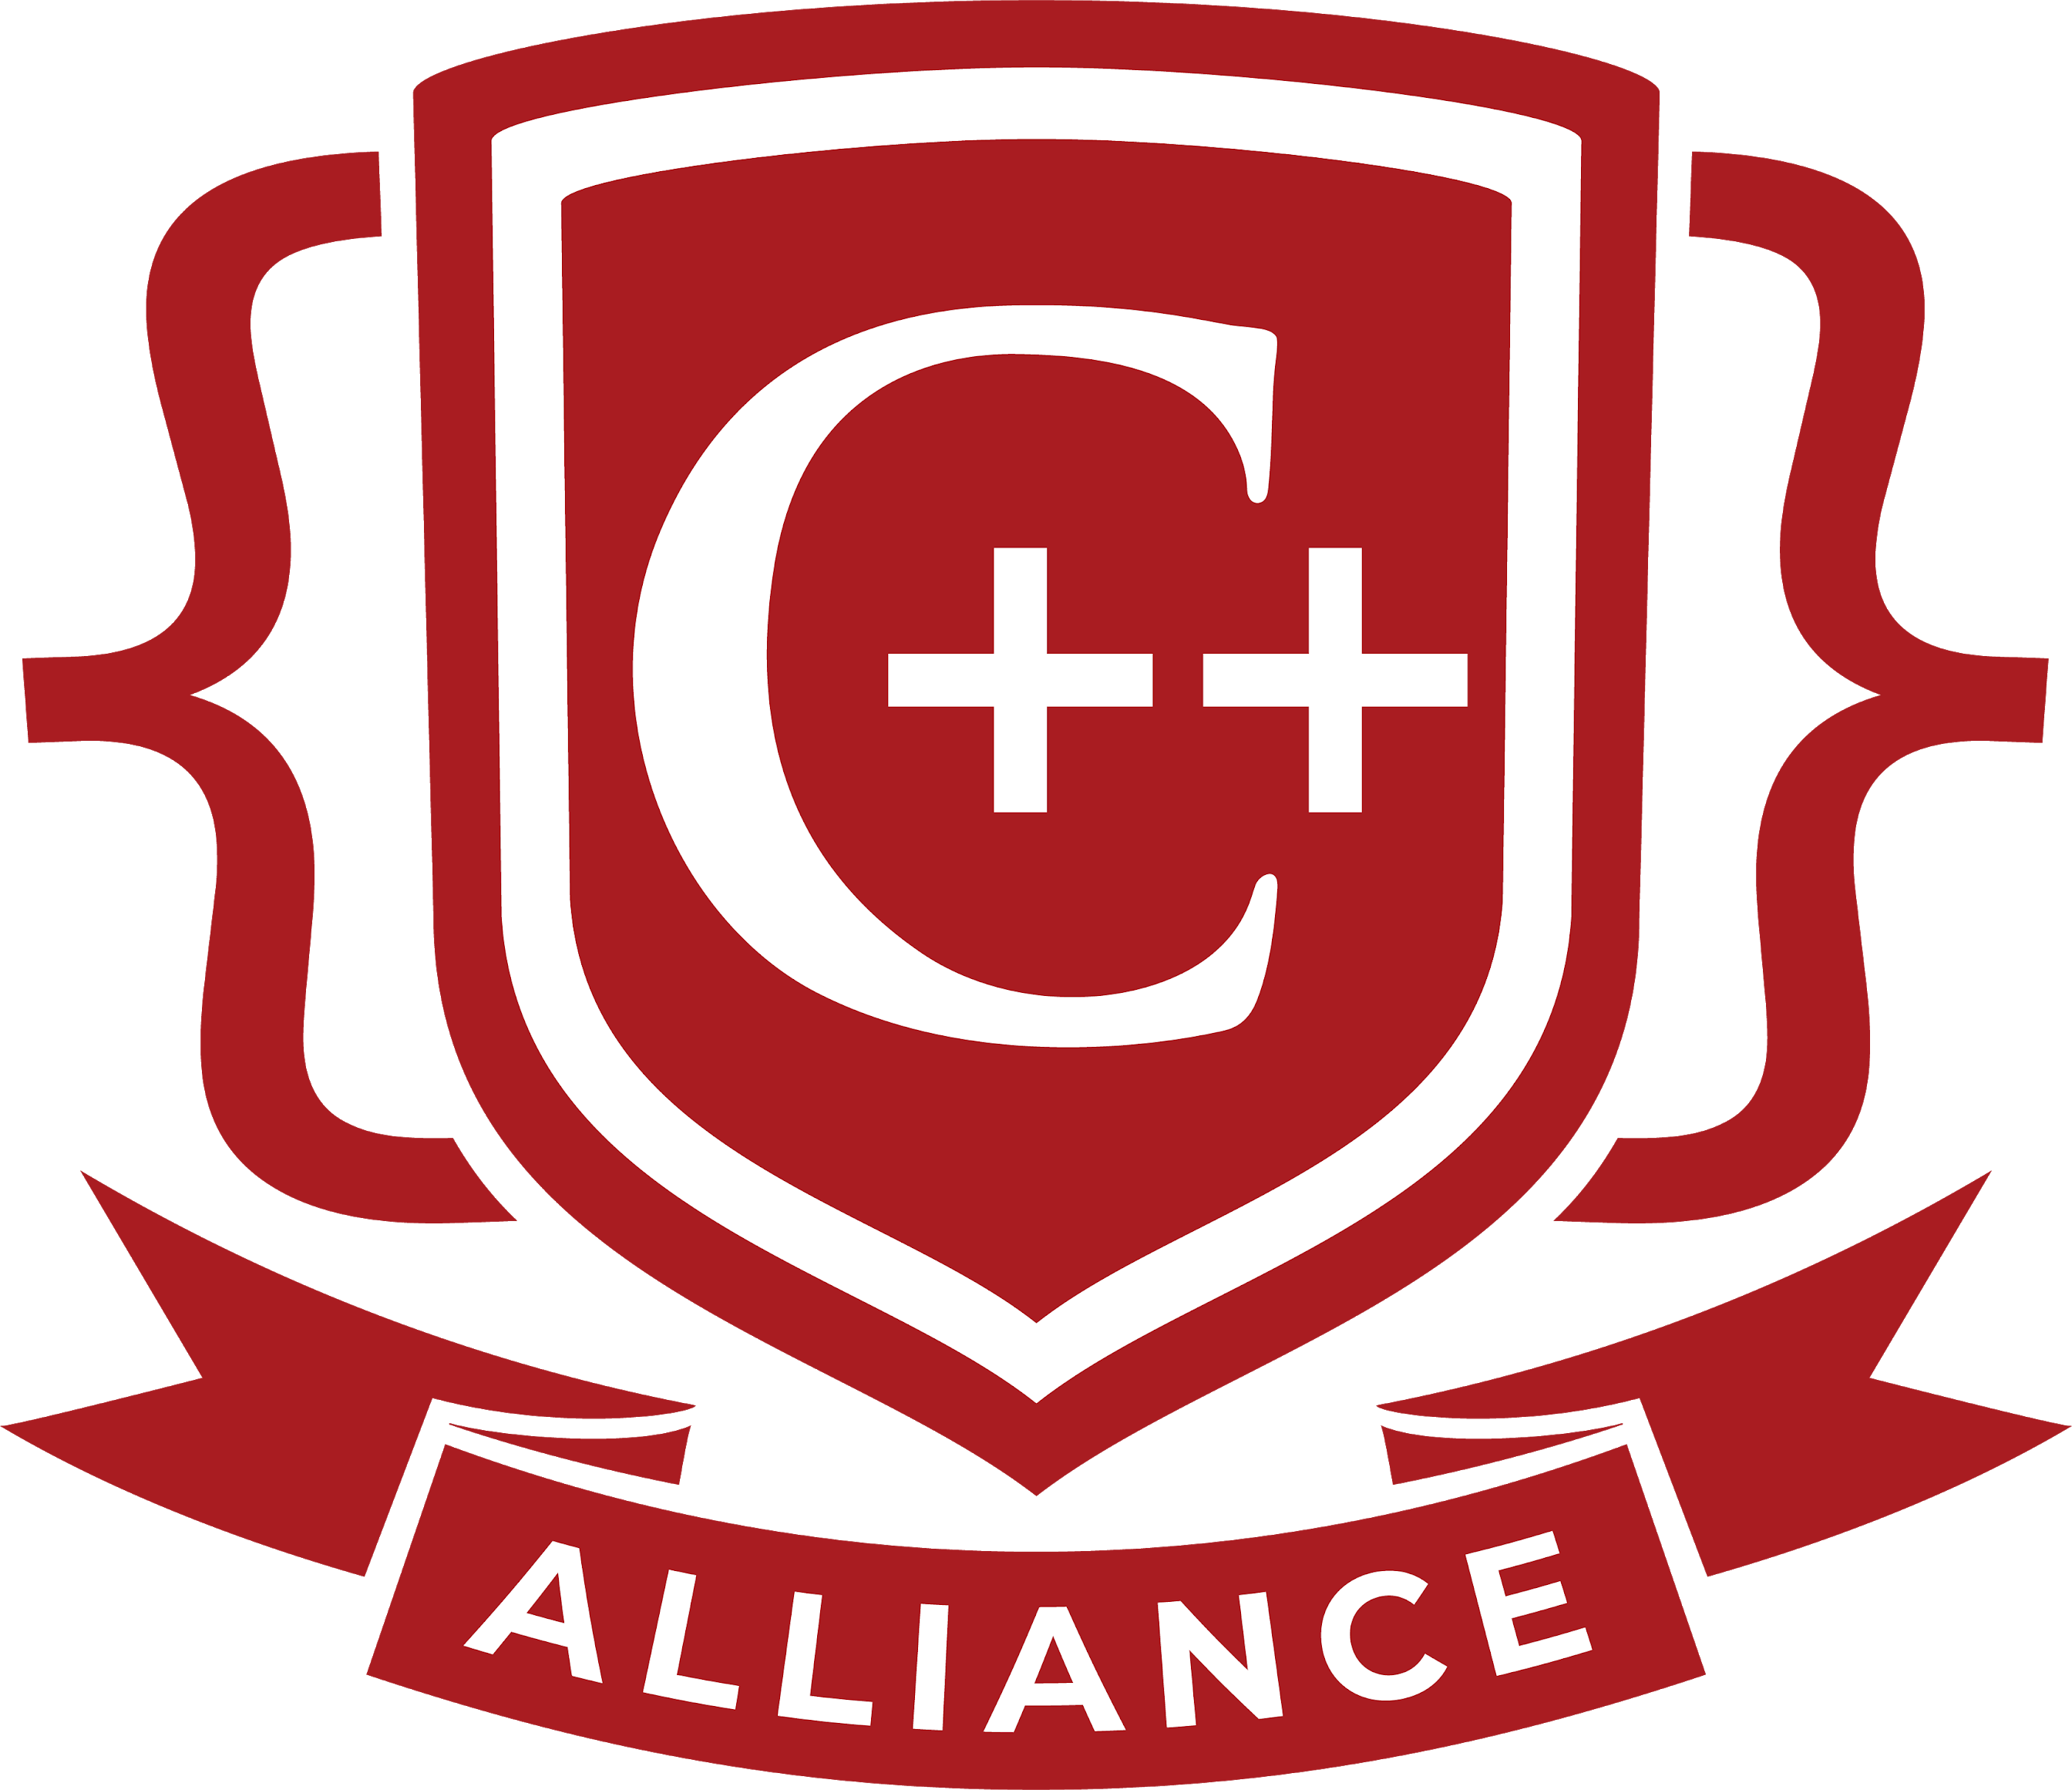 The C++ Alliance